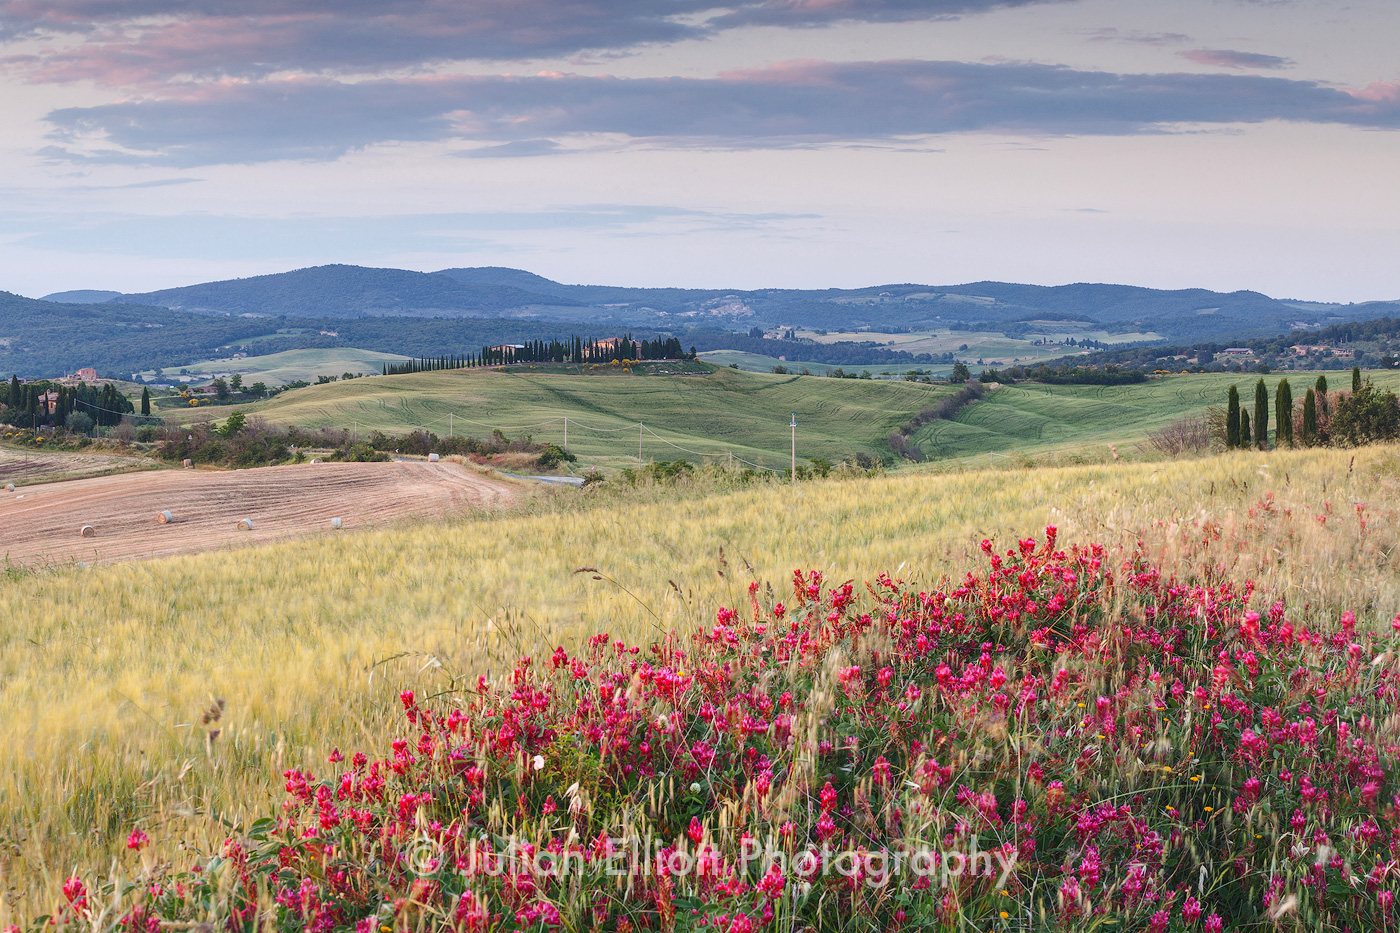 Wildflowers in the Val d'Orcia, Tuscany.